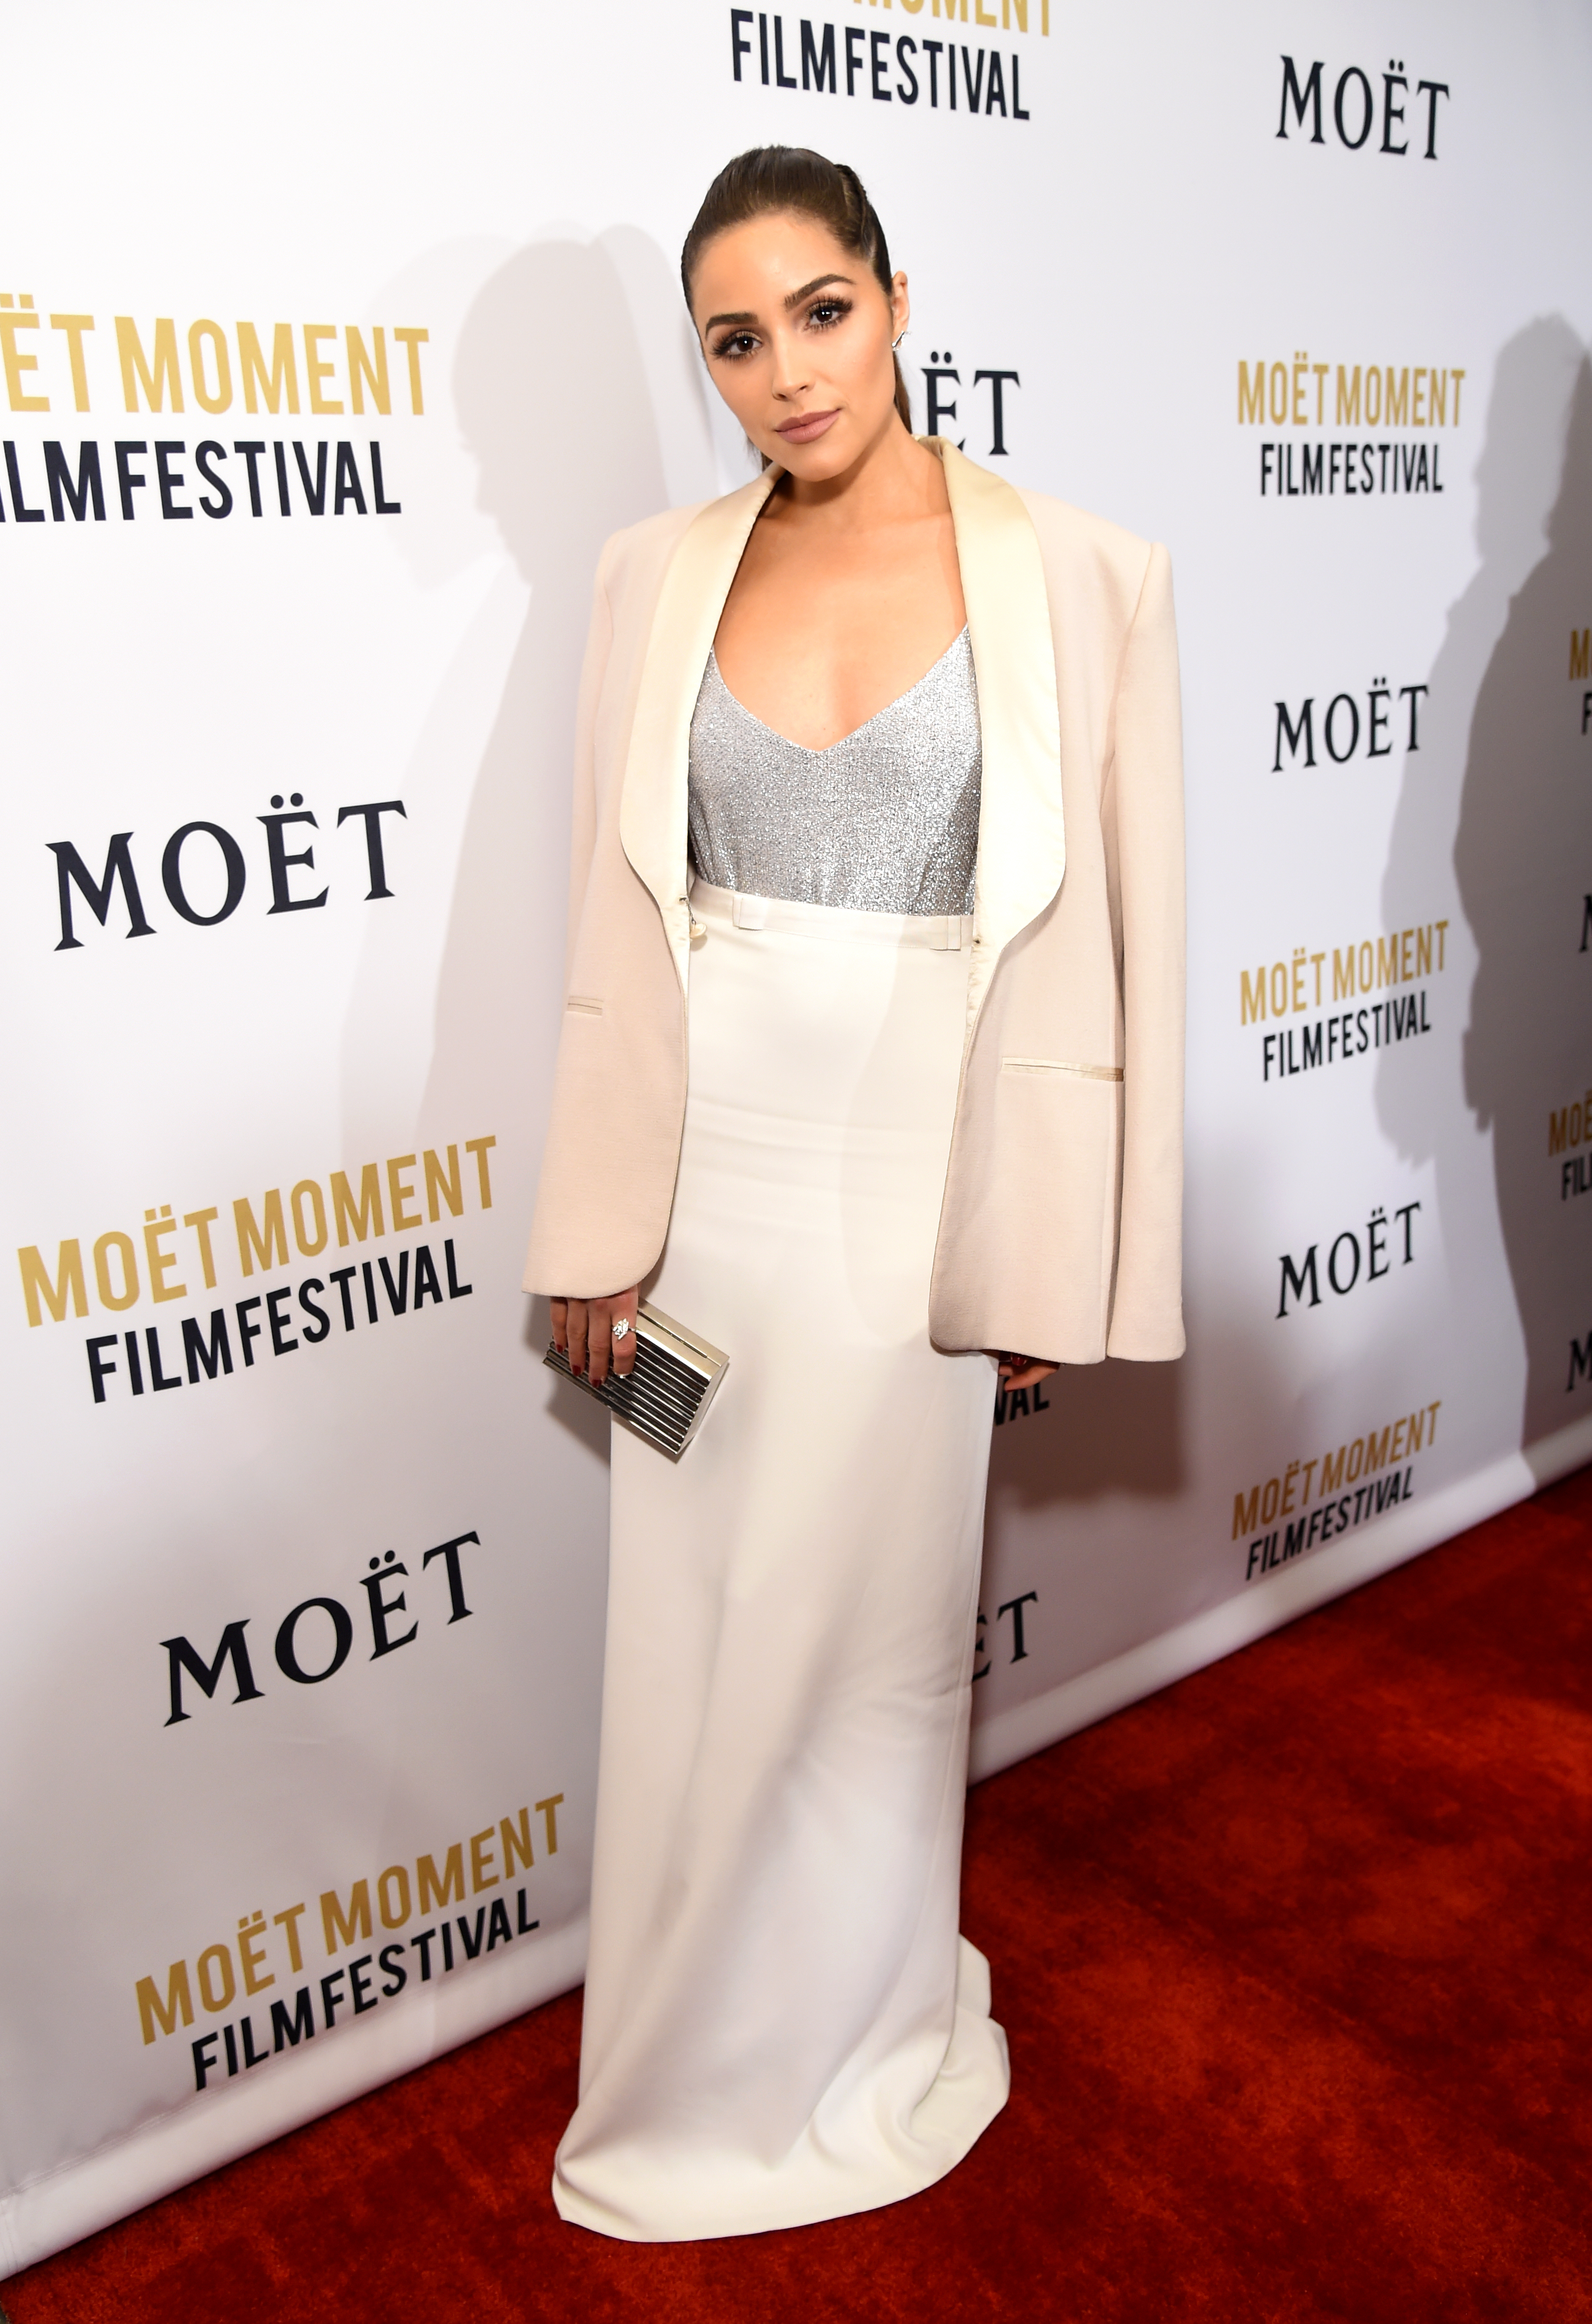 Moet & Chandon Celebrates The 2nd Annual Moet Moment Film Festival and Kicks off Golden Globes Week